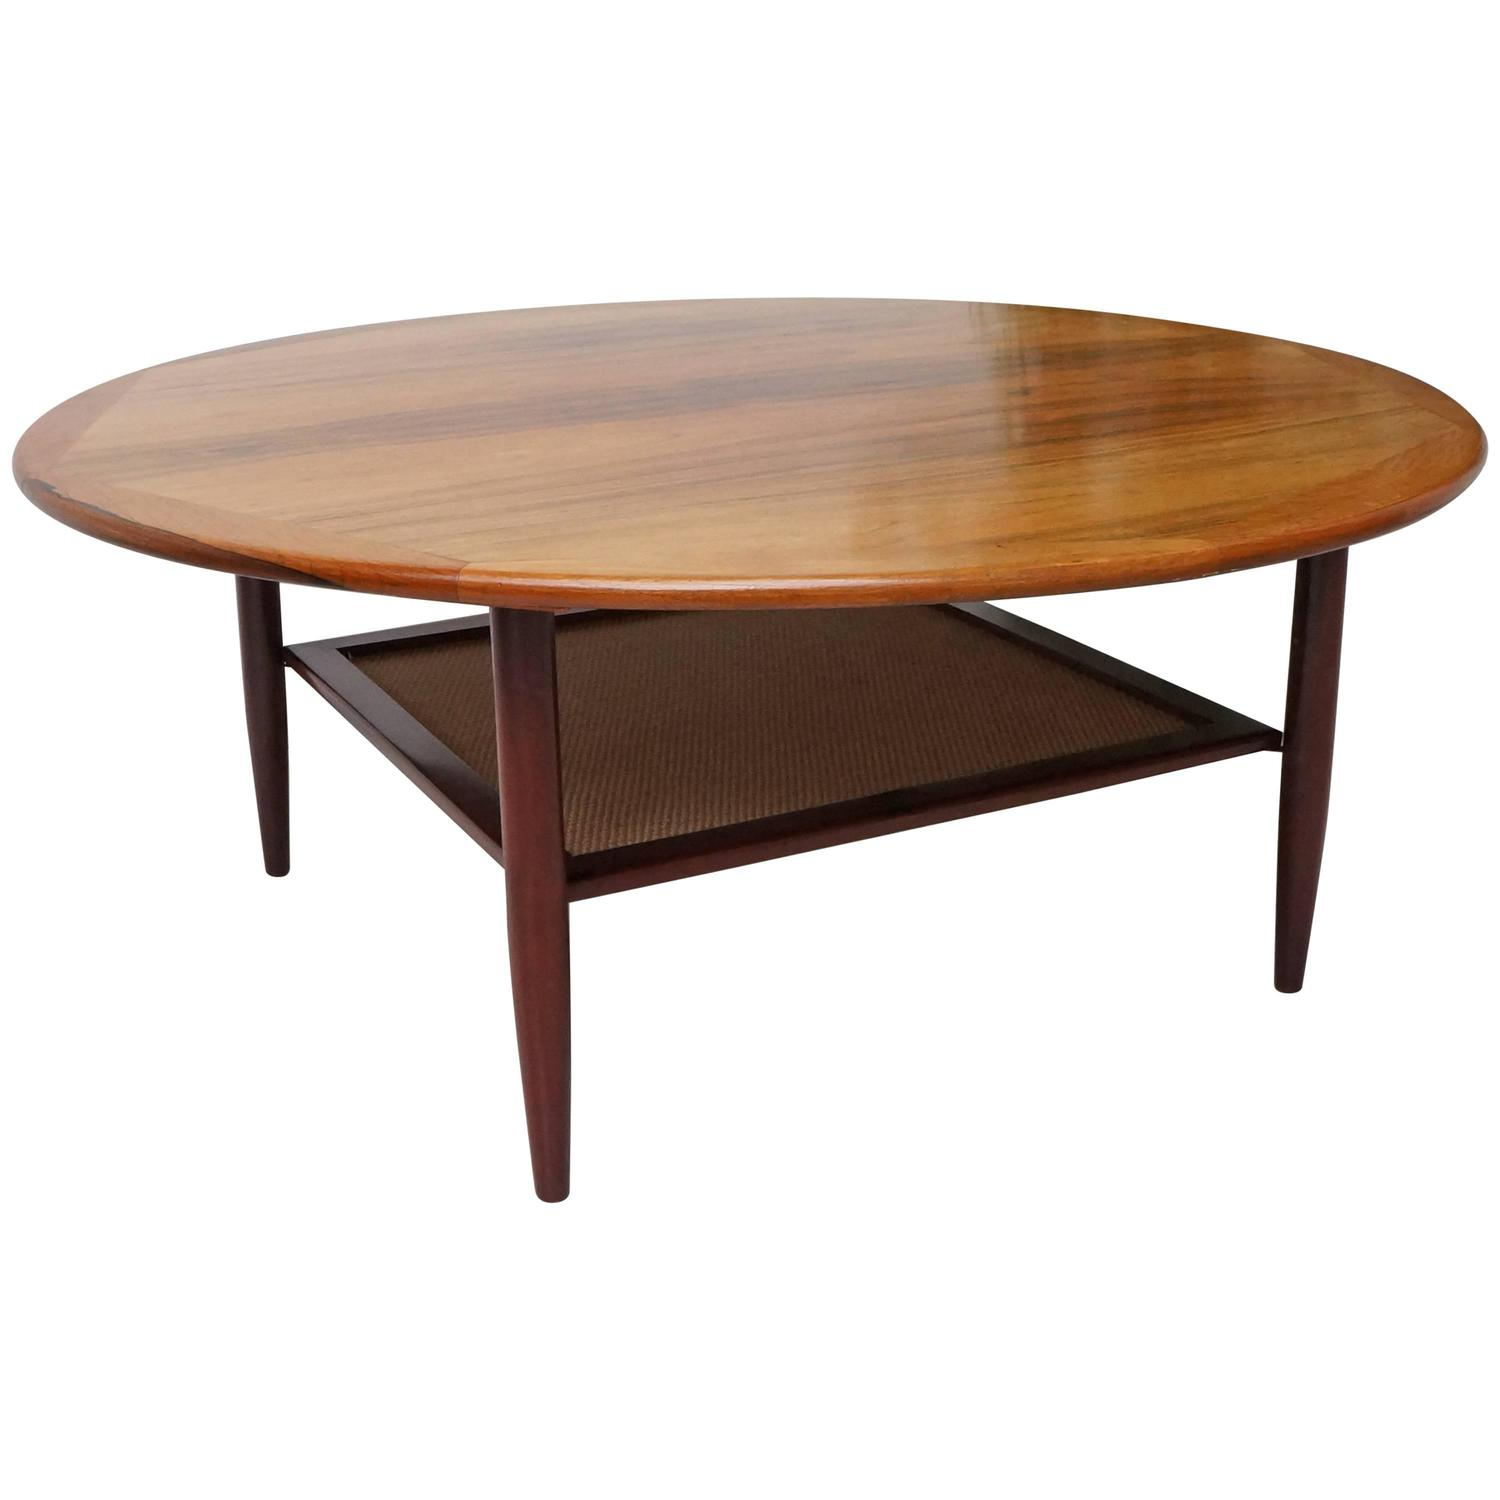 Large round wooden coffee table 1960s at 1stdibs for Large wood coffee table